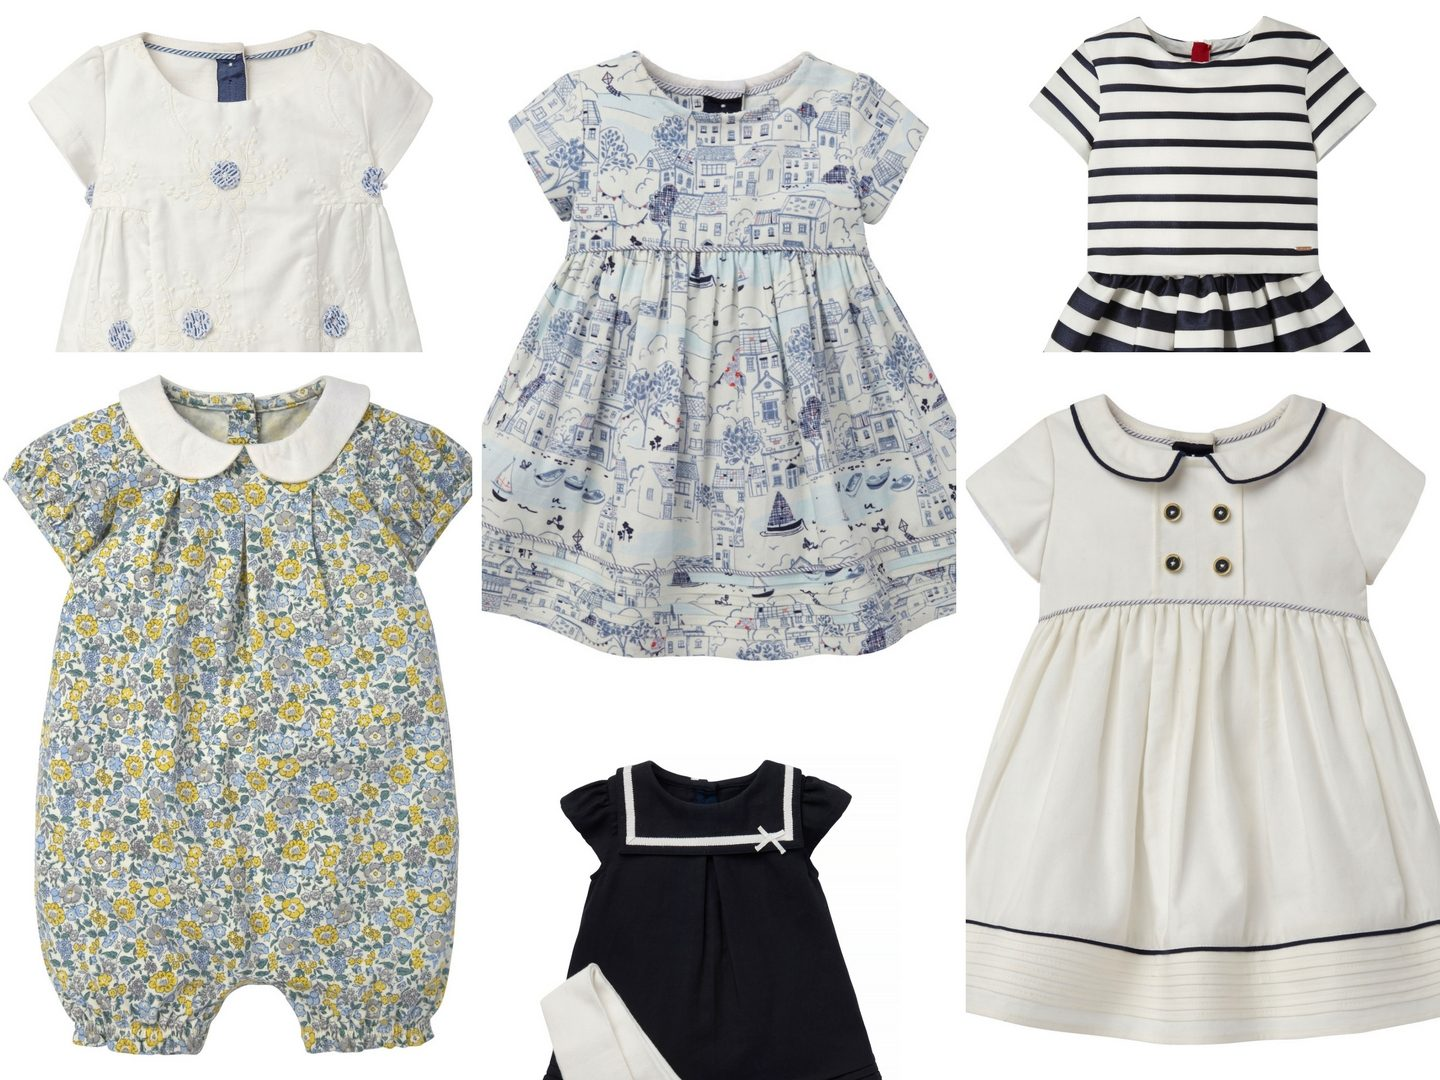 Marks and Spencer girls' clothing